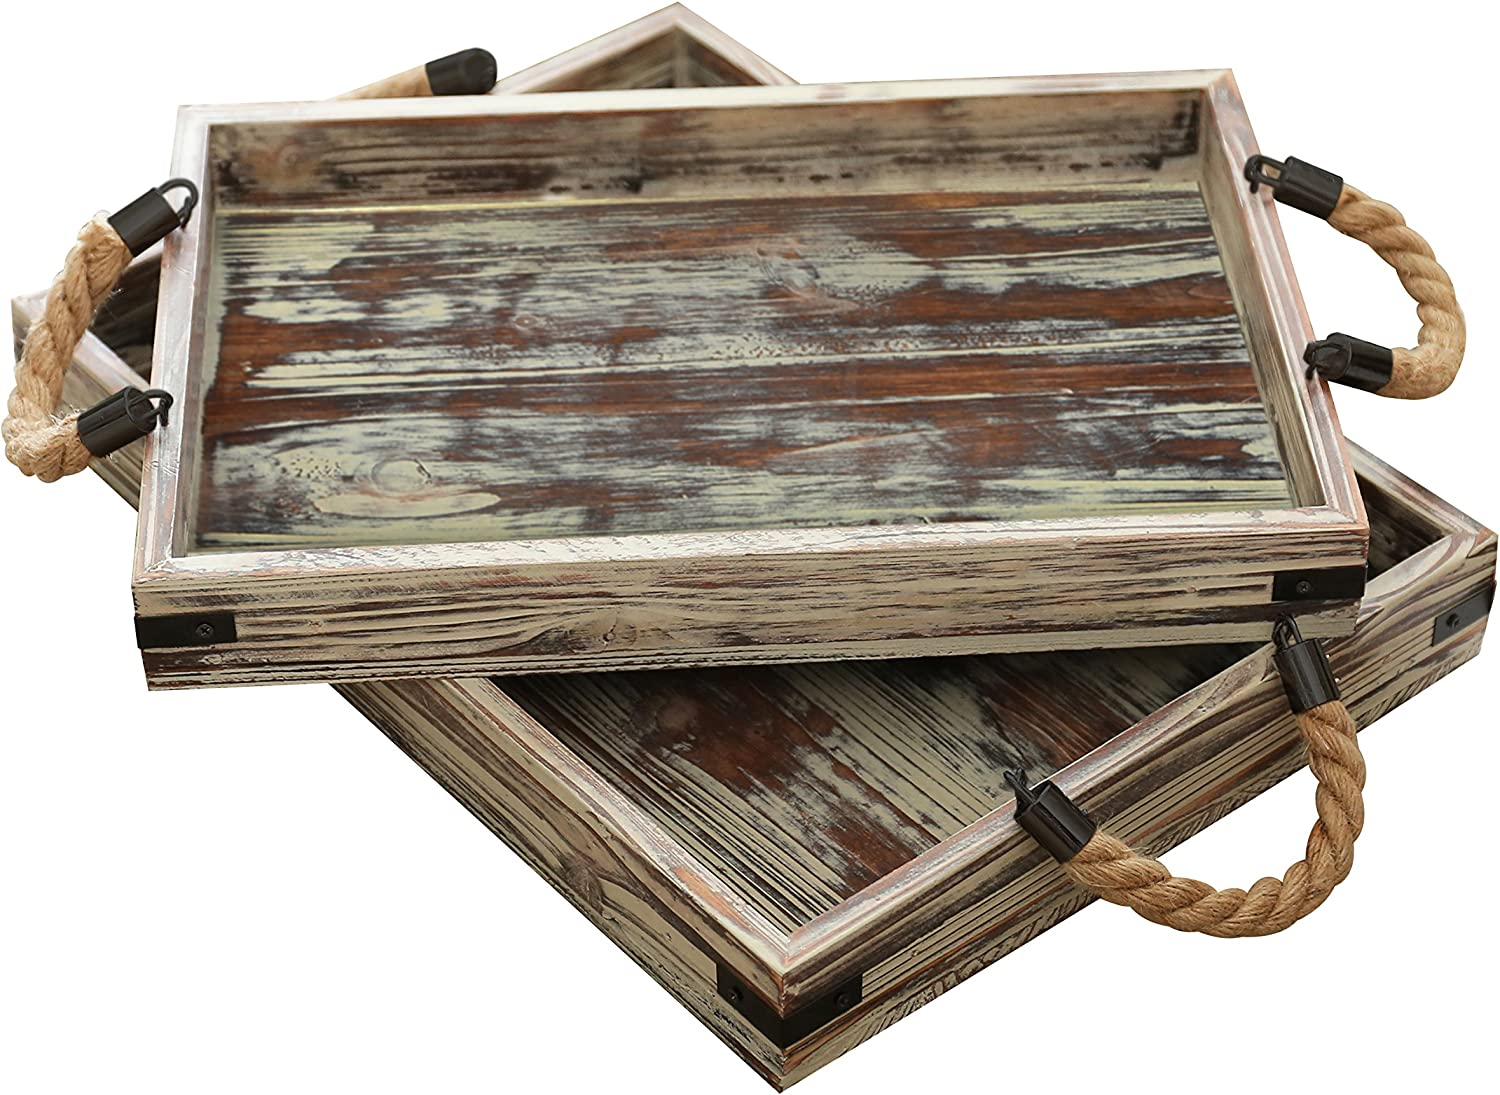 Amazon Com Mygift Country Rustic Wood Coffee Tray Set Of 2 With Rope Handles Breakfast Platters Serving Trays Home Kitchen